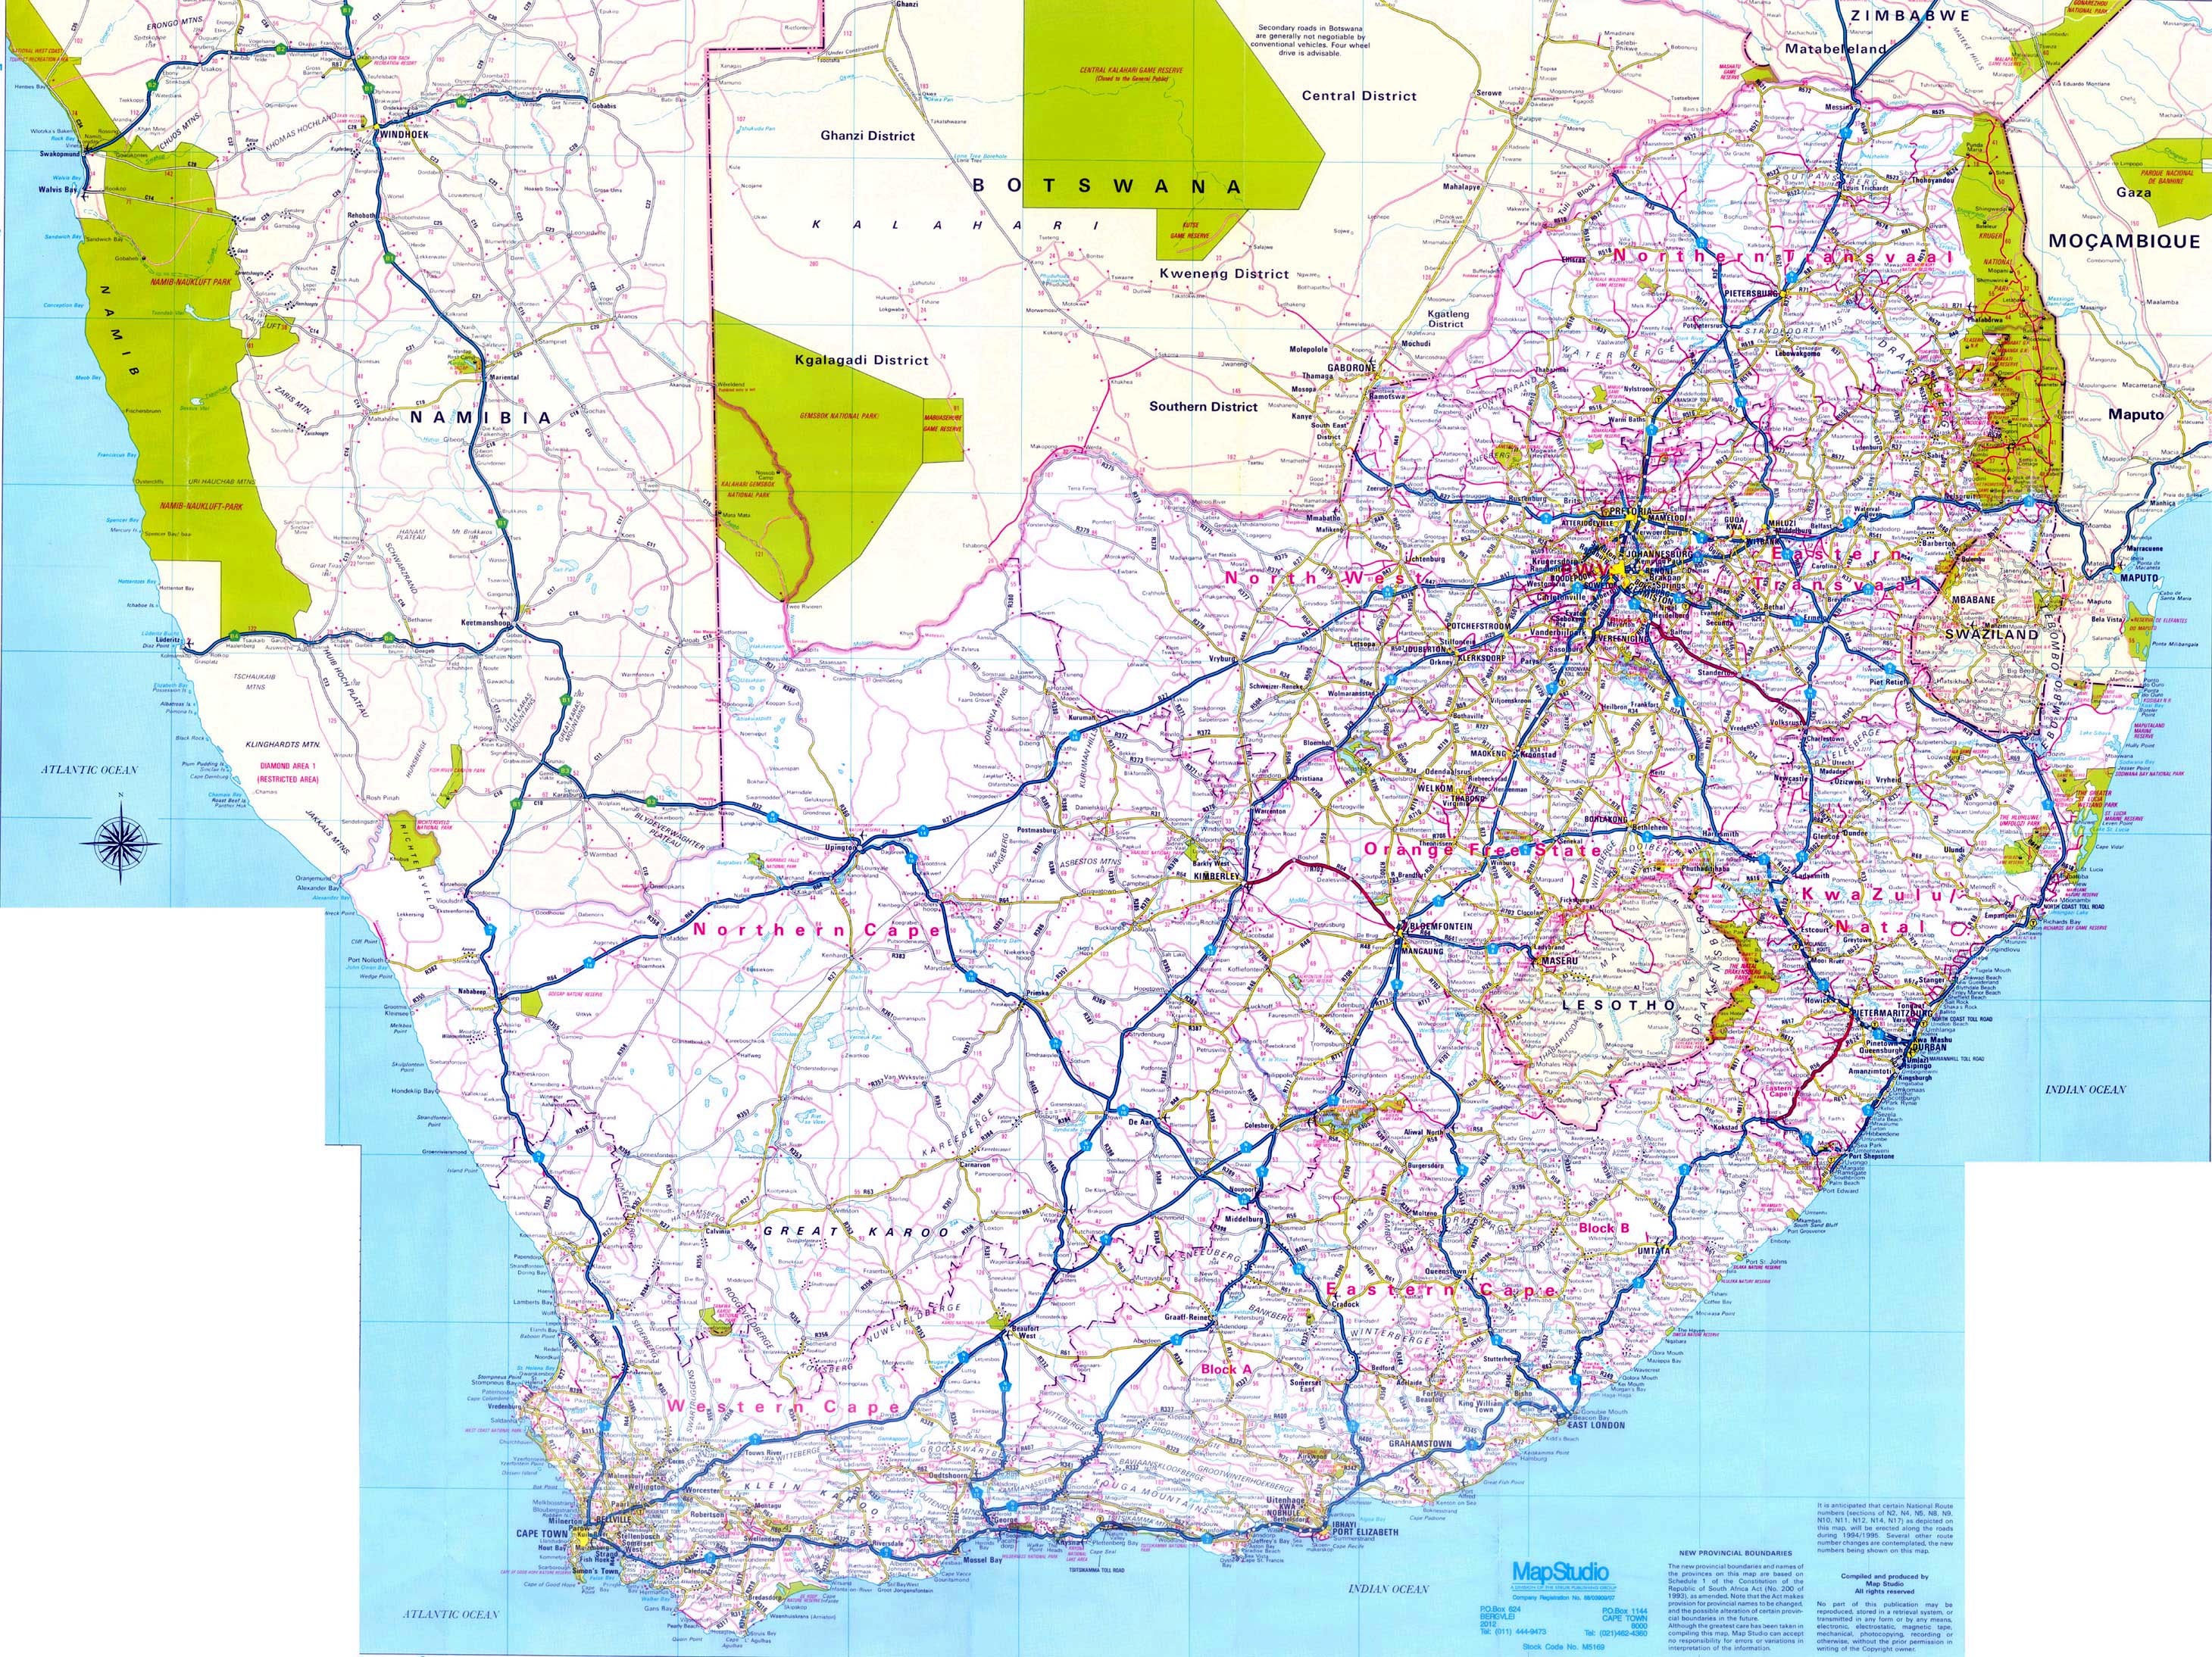 Printable Road Maps South Africa Maps | Printable Maps of South Africa for Download